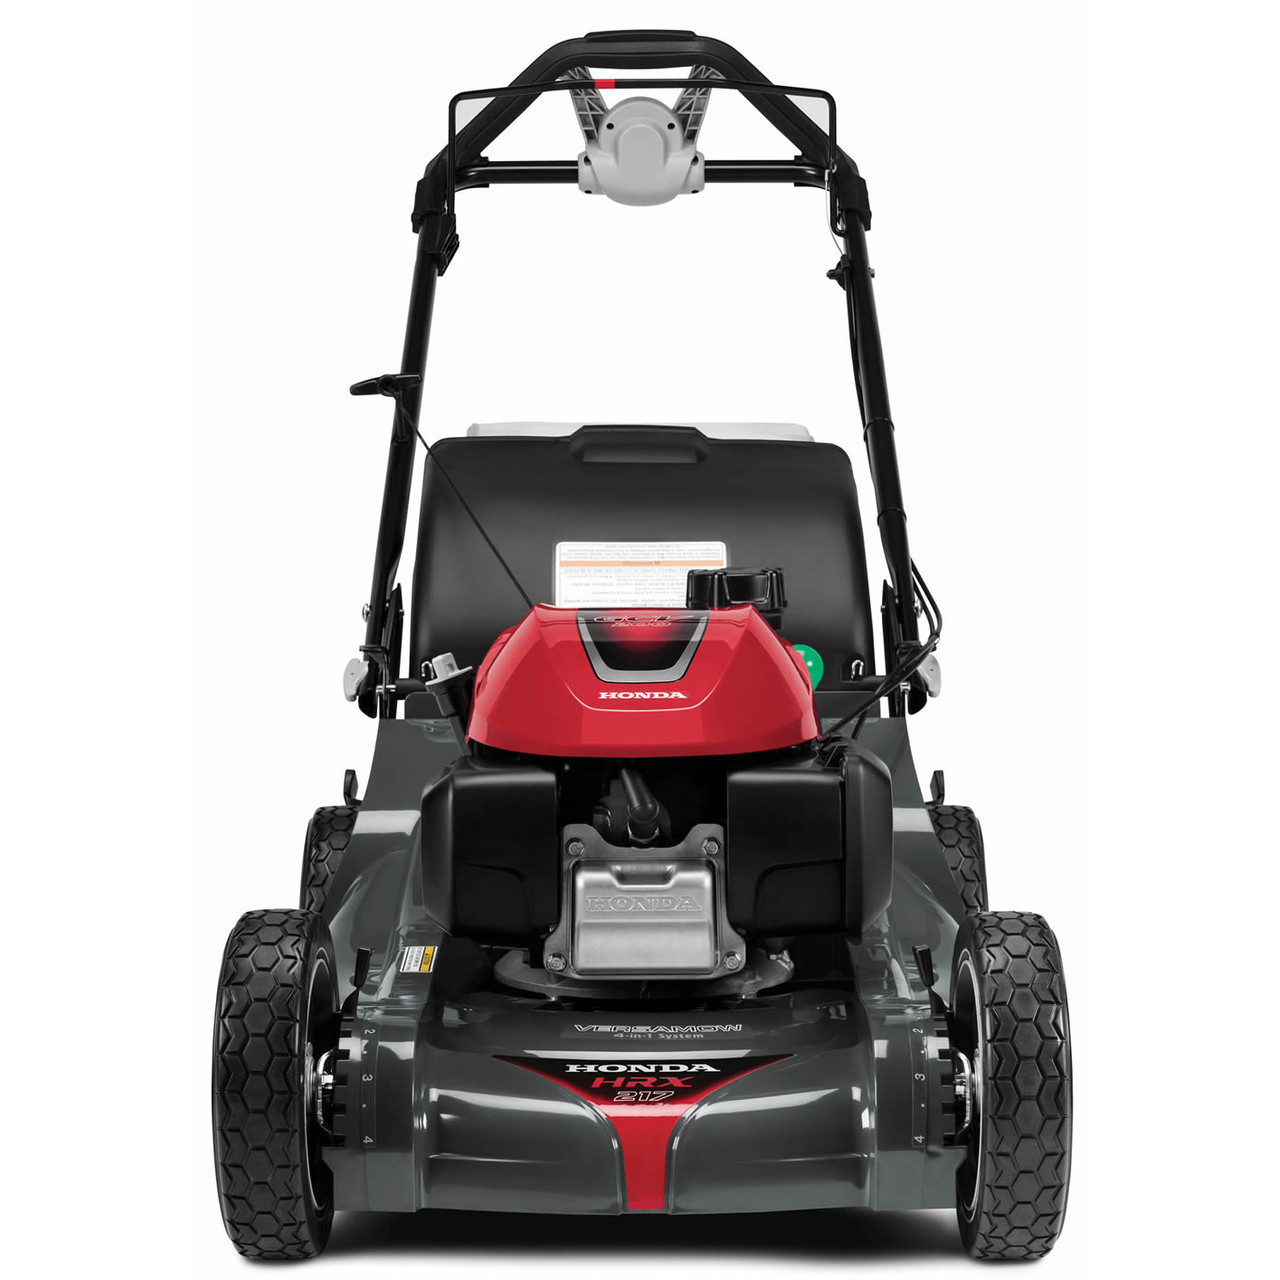 "Honda HRX217VKA 21"" Walk Behind Self-Propelled Lawn Mower w/ GCV200 Engine Image 2"